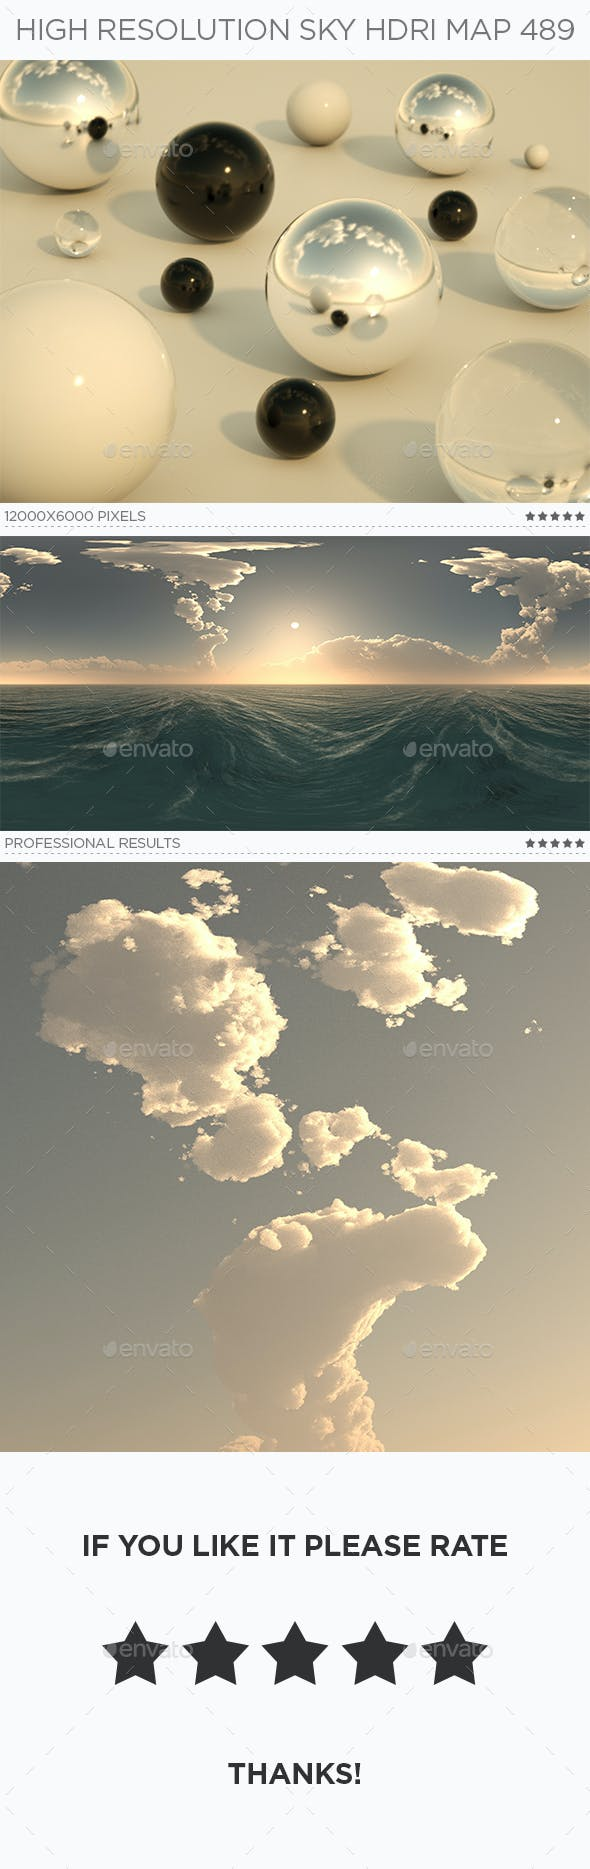 High Resolution Sky HDRi Map 489 - 3DOcean Item for Sale